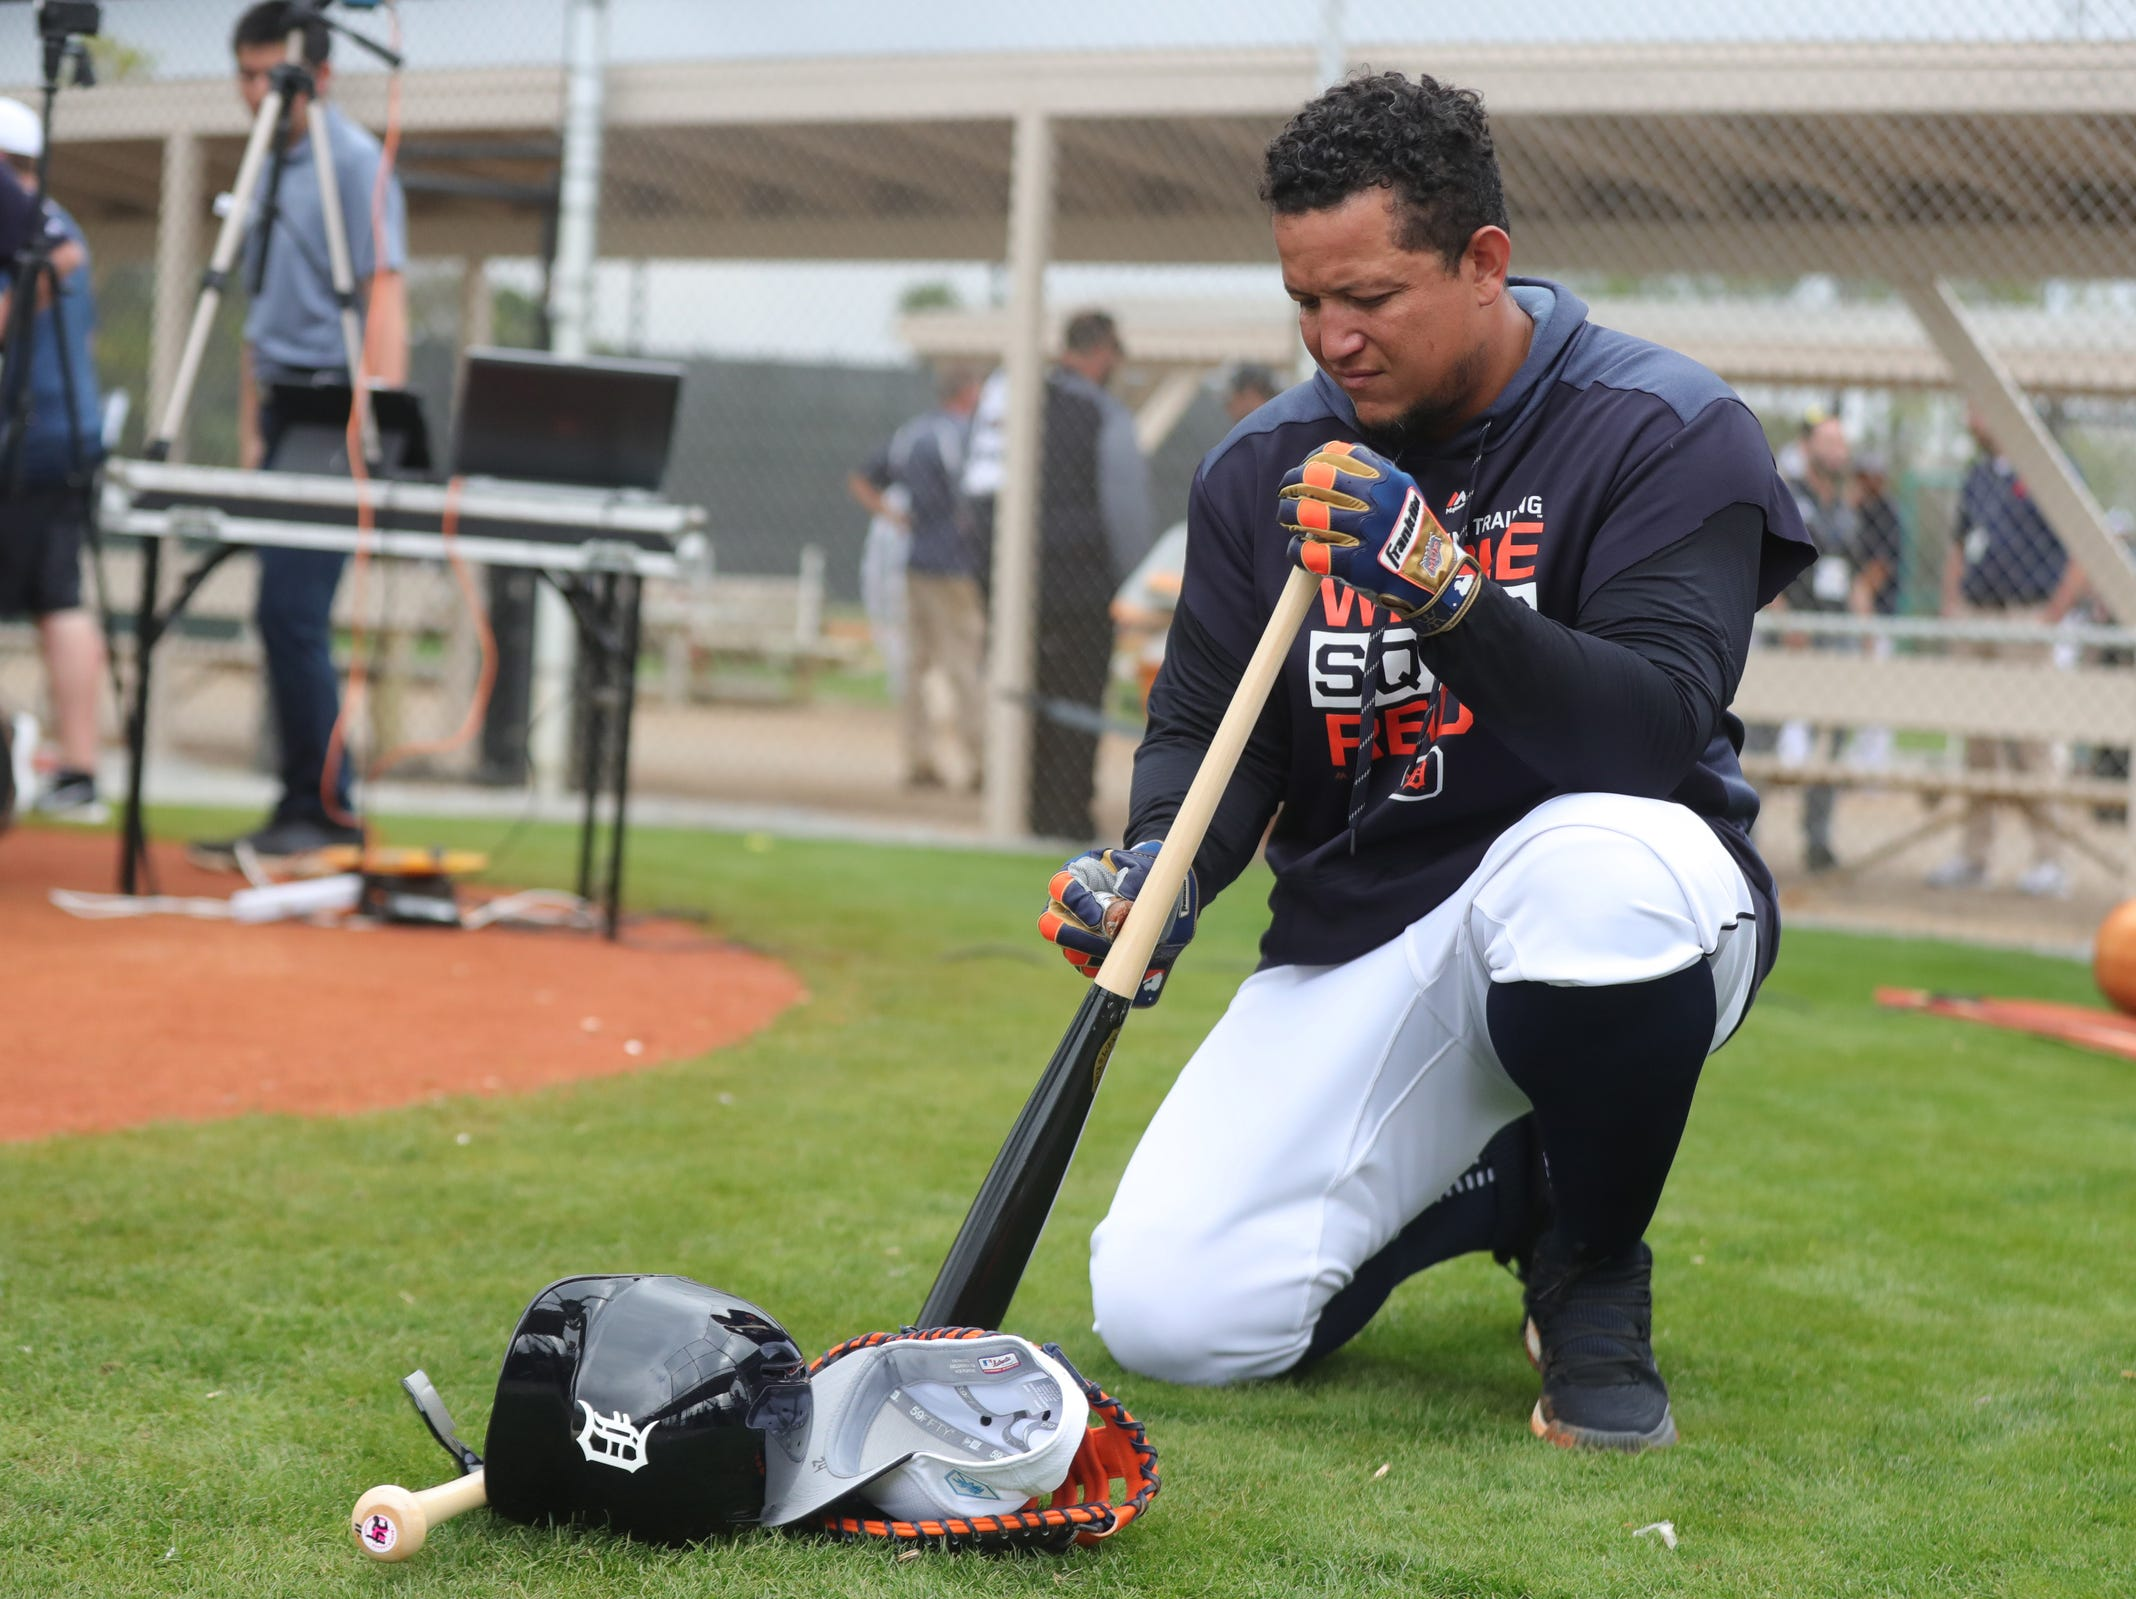 Tigers first baseman Miguel Cabrera prepares for batting practice during the first full team practice on Monday, Feb. 18, 2019, at Joker Marchant Stadium in Lakeland, Florida.